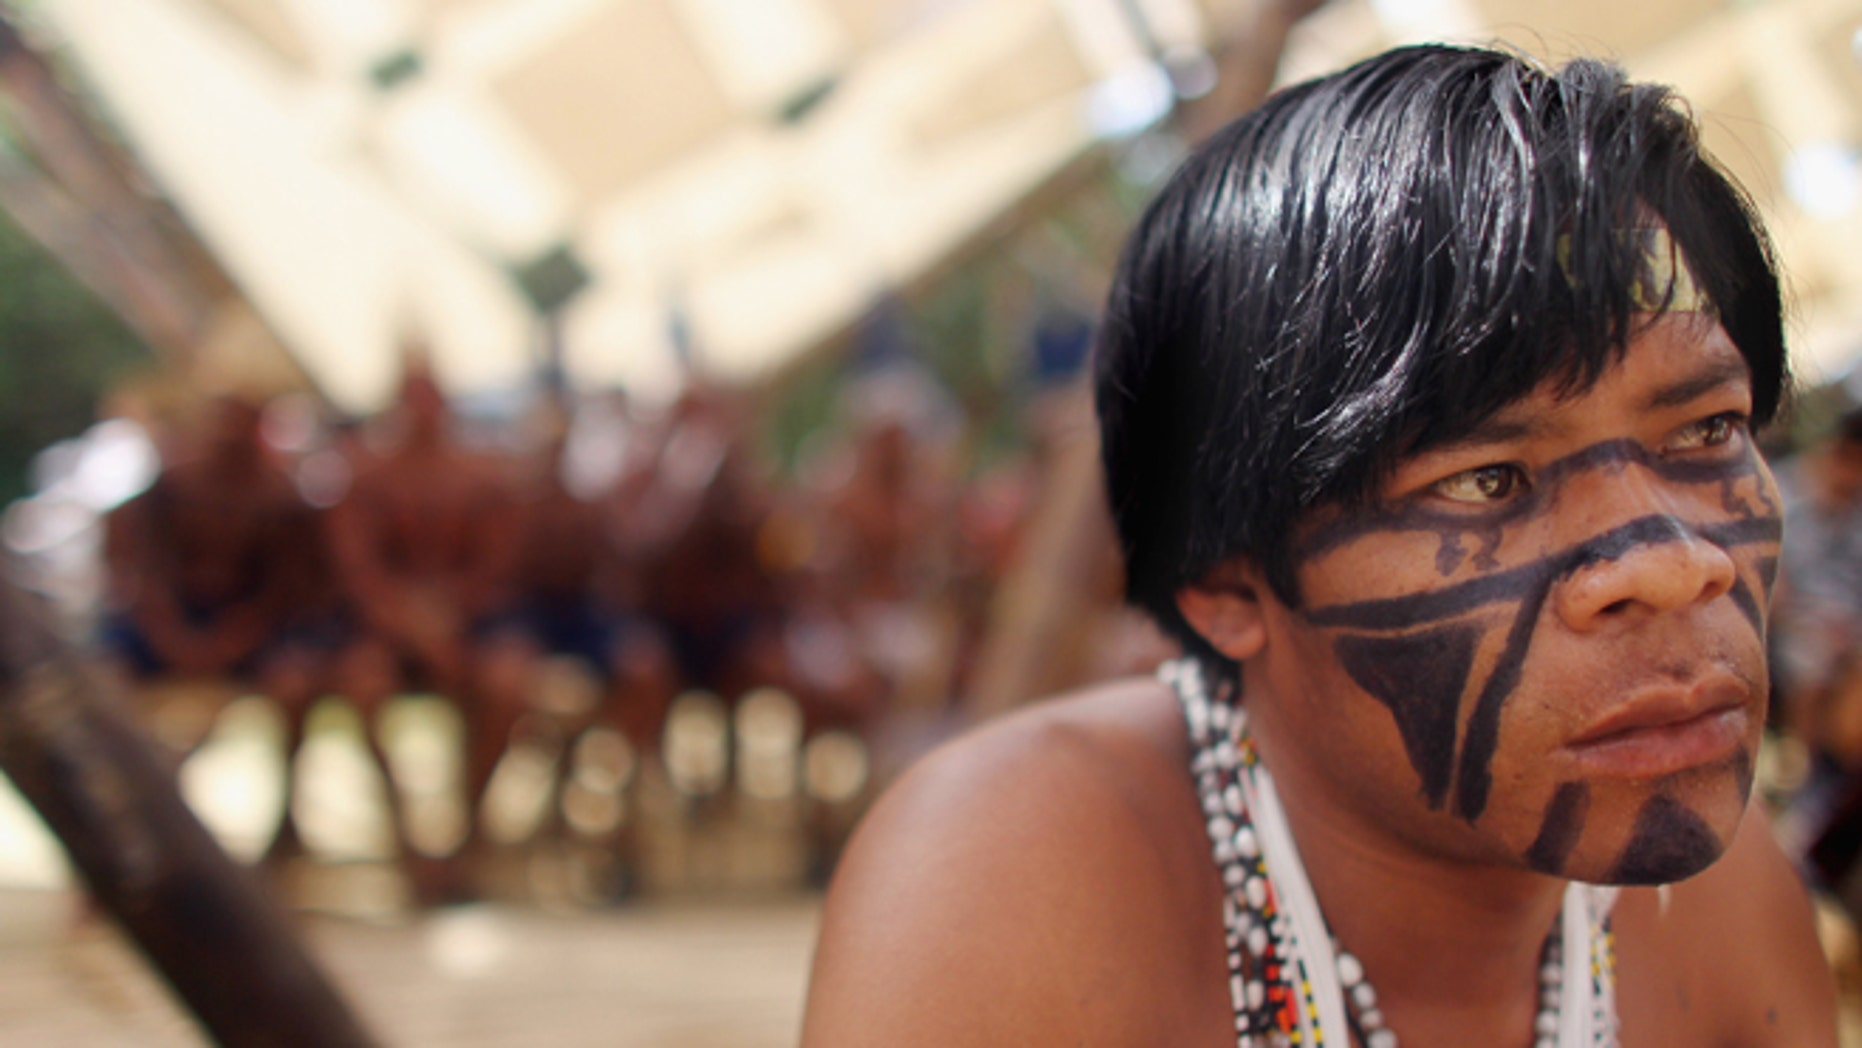 RIO DE JANEIRO, BRAZIL - JUNE 19:  An indigenous man watches a ceremony at the Kari-Oca village constructed by indigenous peoples as a counter point to the Rio + 20 conference on June 19, 2012 in Rio de Janeiro, Brazil. More than 1,000 indigenous peoples are residing at the site through the conference. Indigenous groups oppose Brazil's Amazon forest policies including the controversial Belo Monte dam project. Over 100 heads of state and tens of thousands of participants and protesters will descend on Rio de Janeiro, Brazil, June 20-22 for the high-level portion of the Rio+20 United Nations Conference on Sustainable Development or 'Earth Summit'. Host Brazil is caught up in its own dilemma between accelerated growth and environmental preservation. The Brazilian Amazon, home to 60 percent of the world's largest forest and 20 percent of the Earth's oxygen, remains threatened by the rapid development of the country. The summit aims to overcome years of deadlock over environmental concerns and marks the 20th anniversary of the landmark Earth Summit in Rio in 1992, which delivered the Climate Convention and a host of other promises. Brazil is now the world's sixth largest economy and is set to host the 2014 World Cup and 2016 Summer Olympics.  (Photo by Mario Tama/Getty Images)